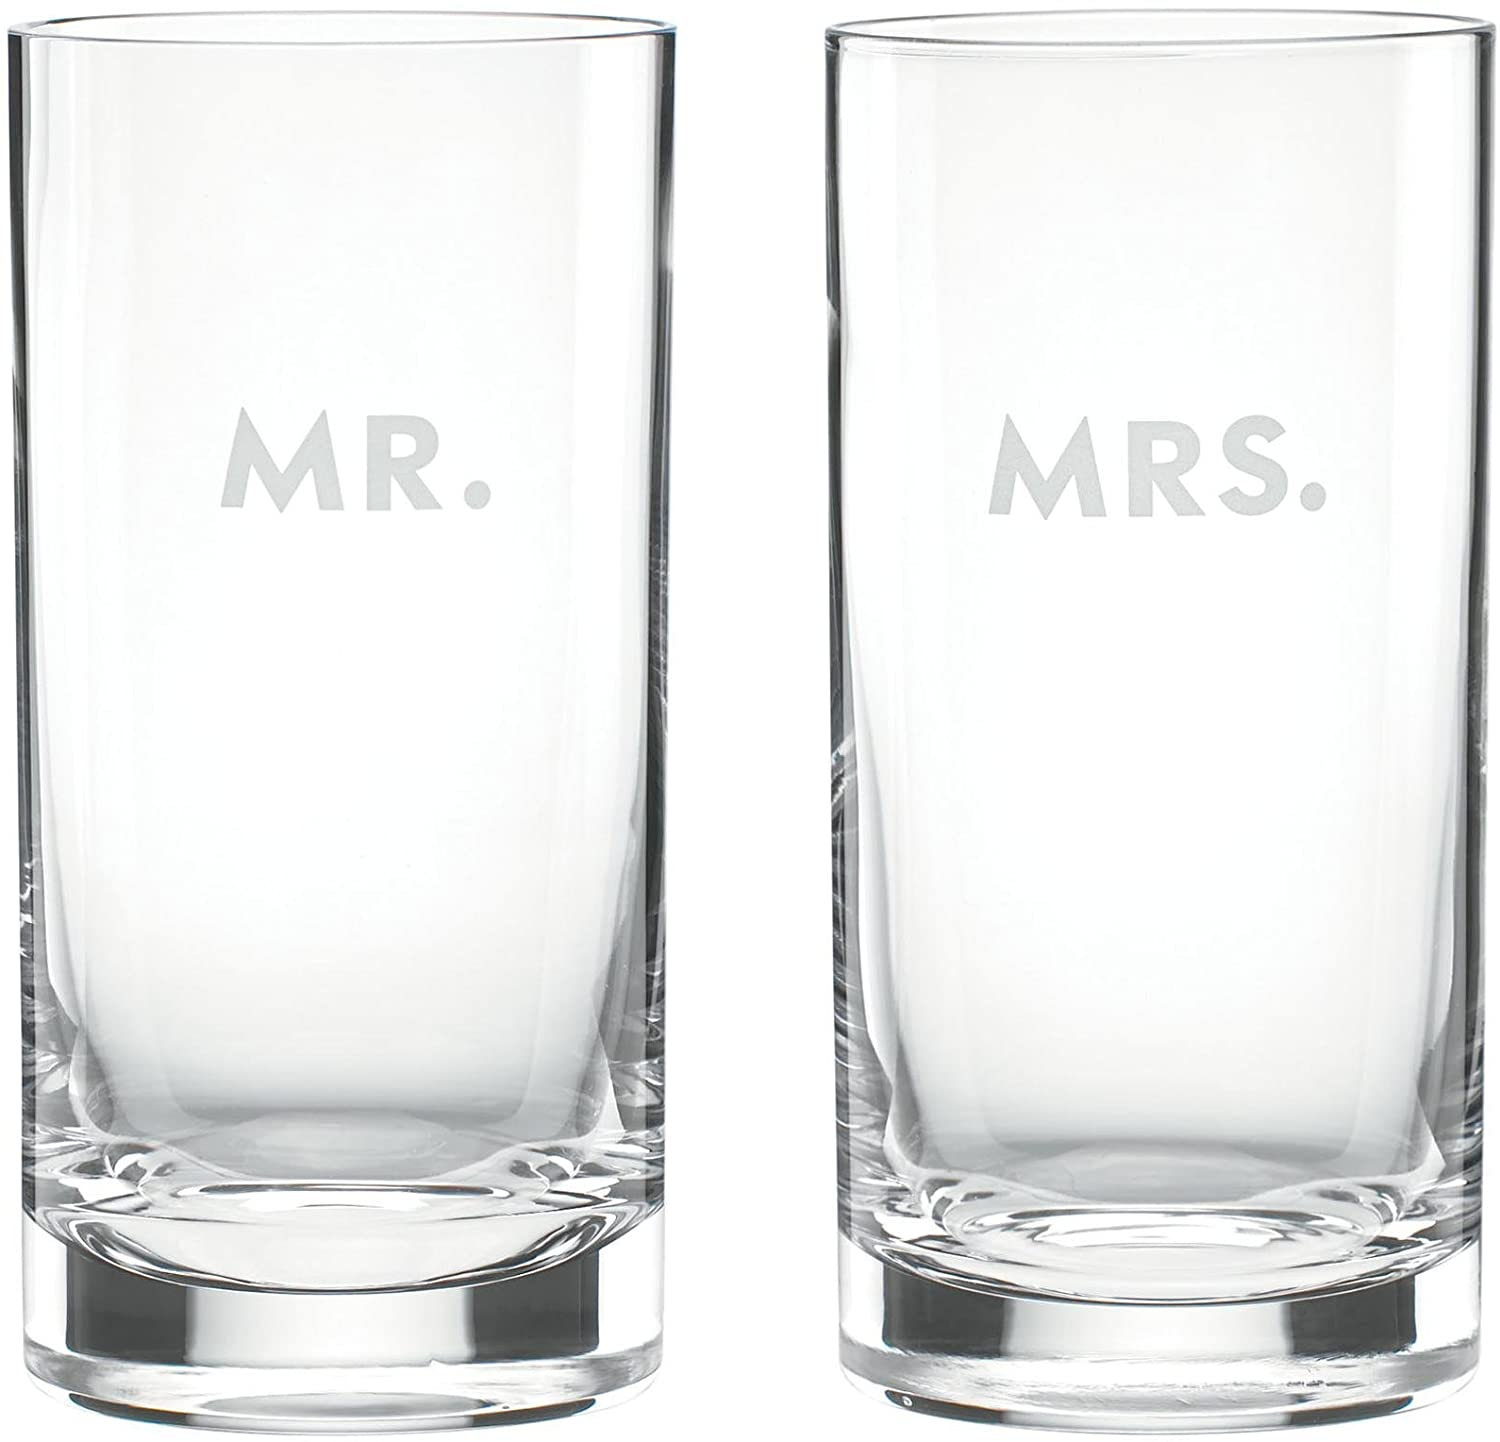 kate spade new york Darling Point Mr. and Mrs. Highball Glasses, Set of 2